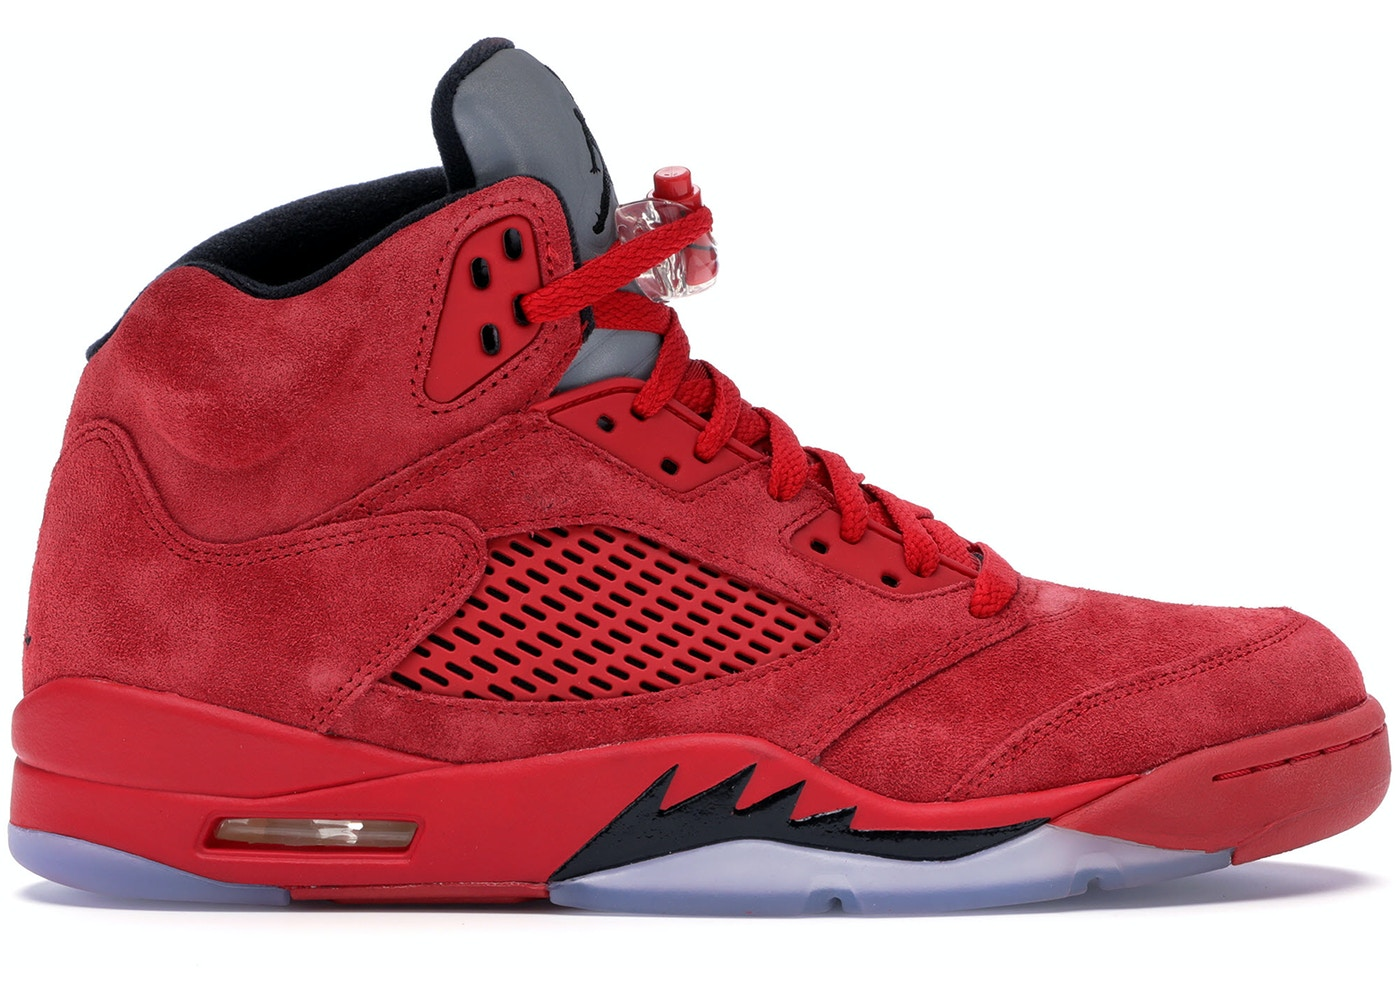 de12e8152ed Jordan 5 Retro Red Suede - 136027-602